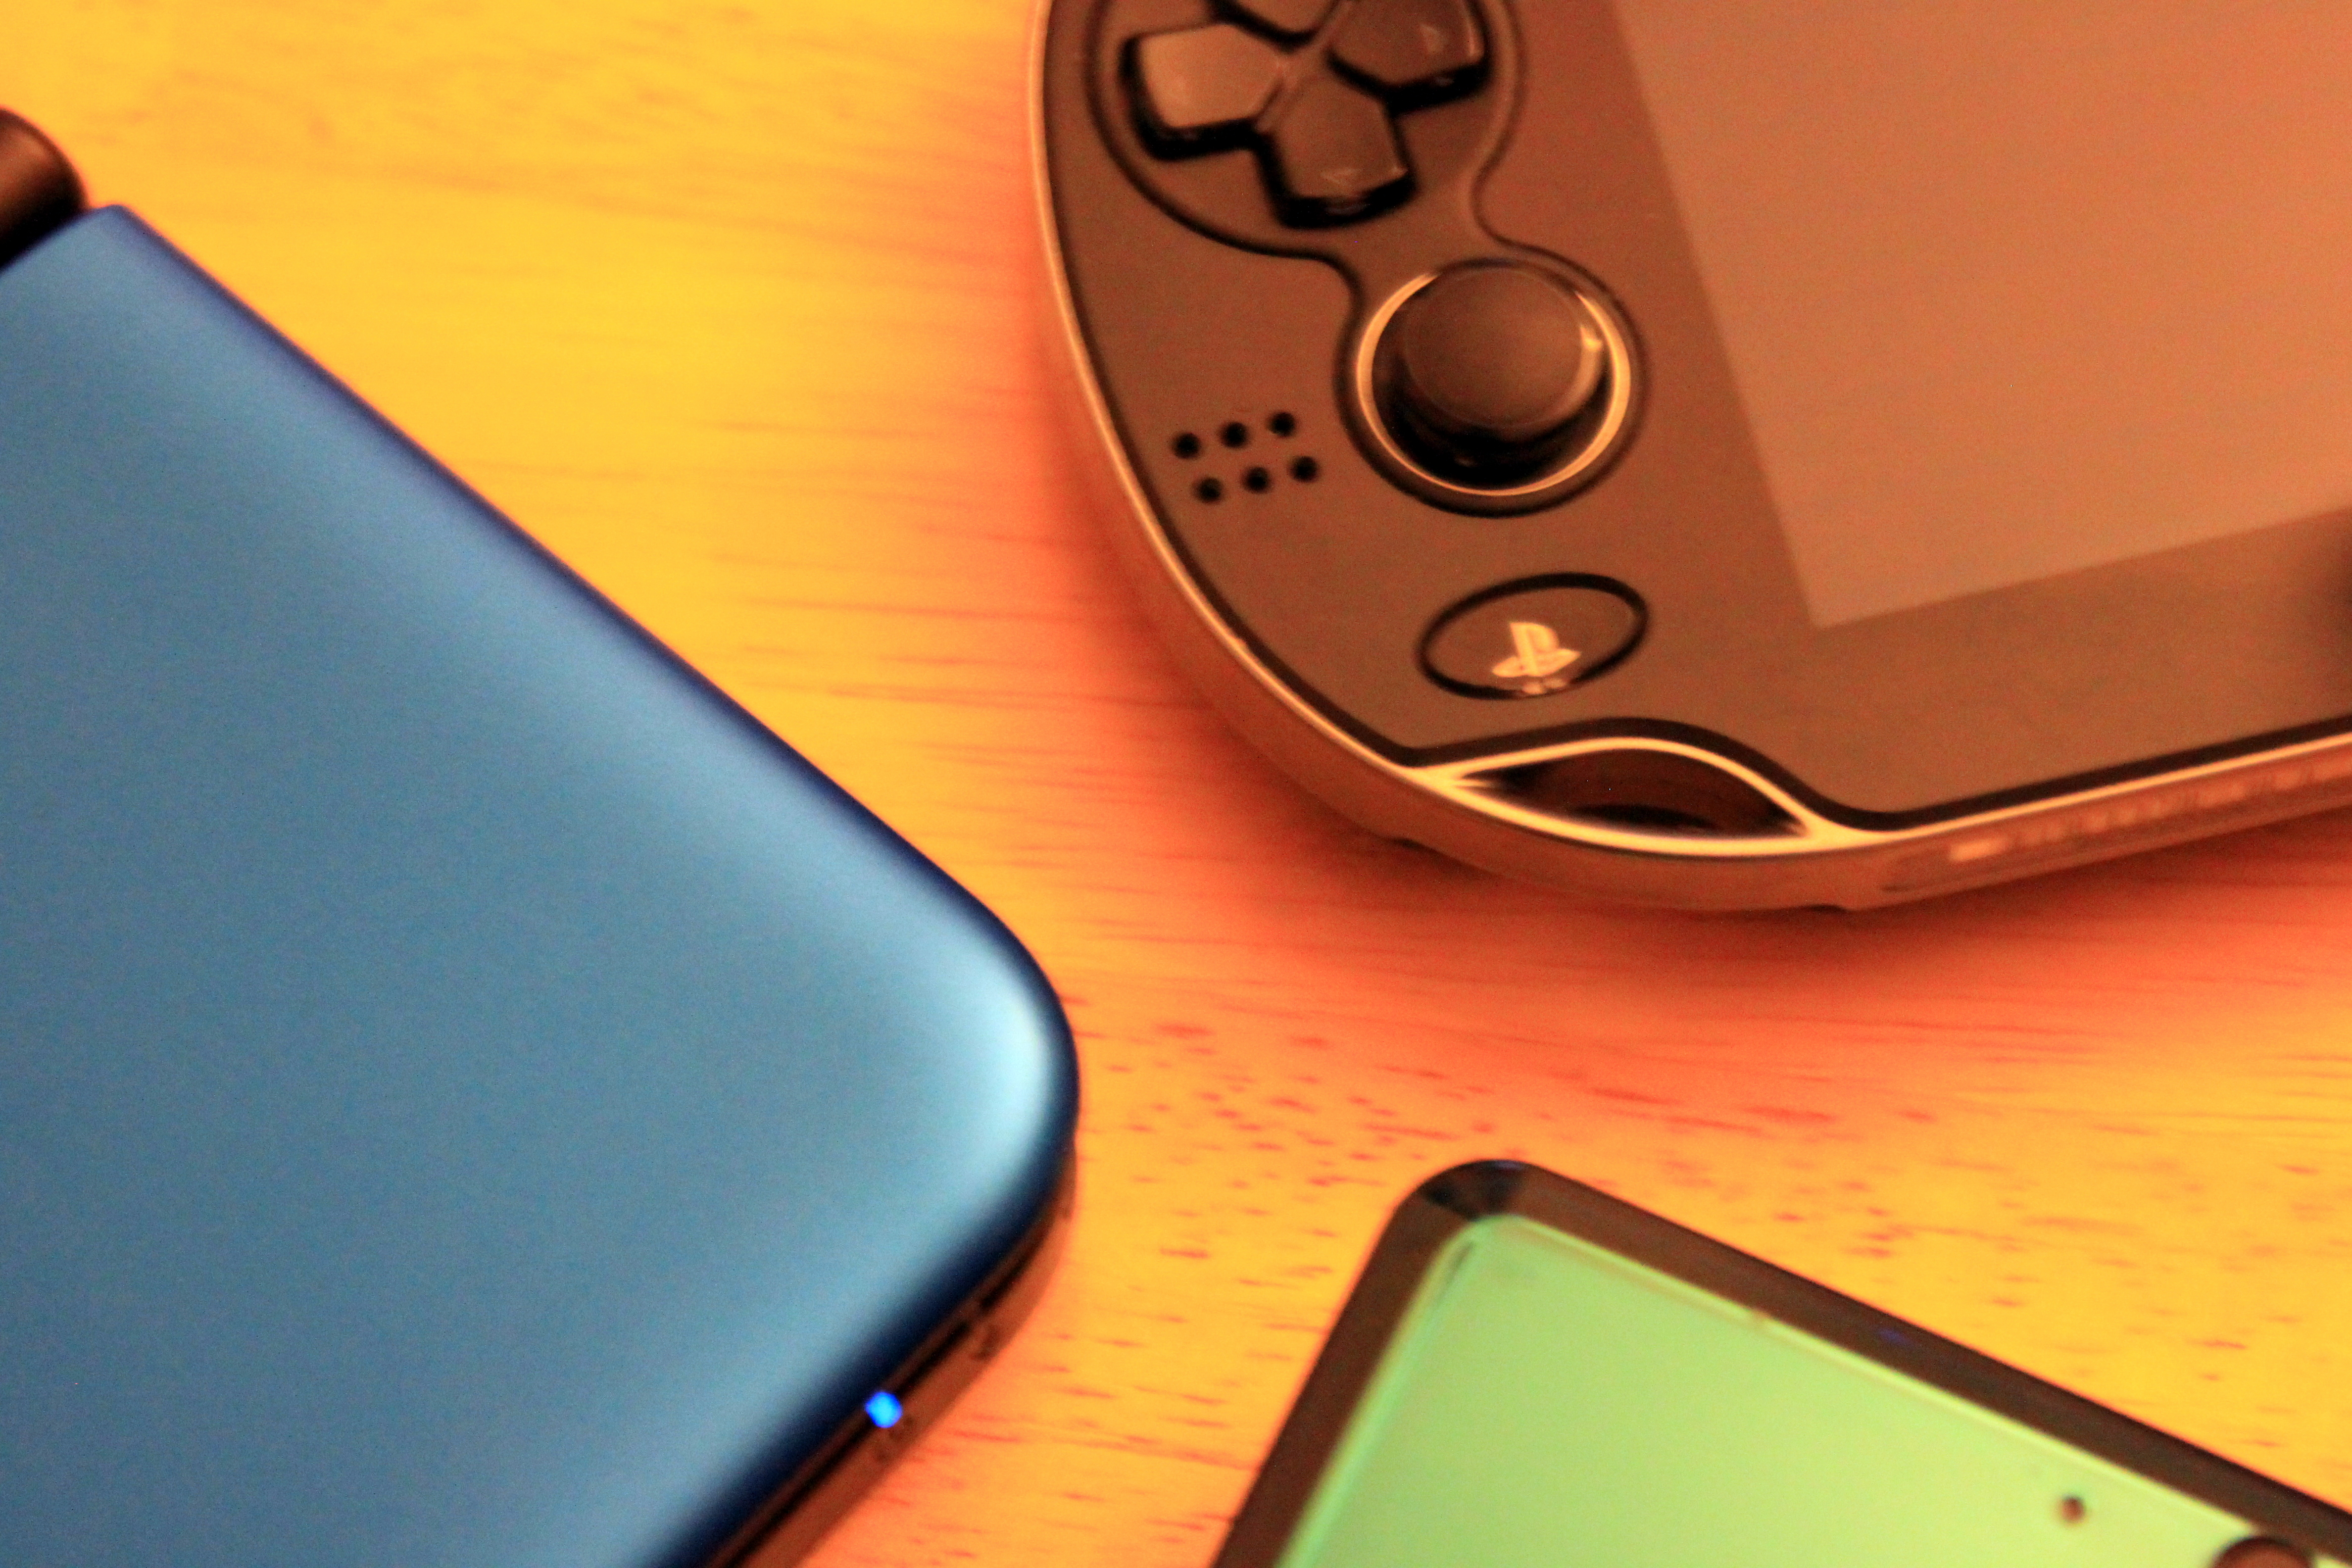 The corners on the 3DS XL (left) are much more comfortably rounded than those on the 3DS (bottom right), but not as nice as those on the Vita (top right).